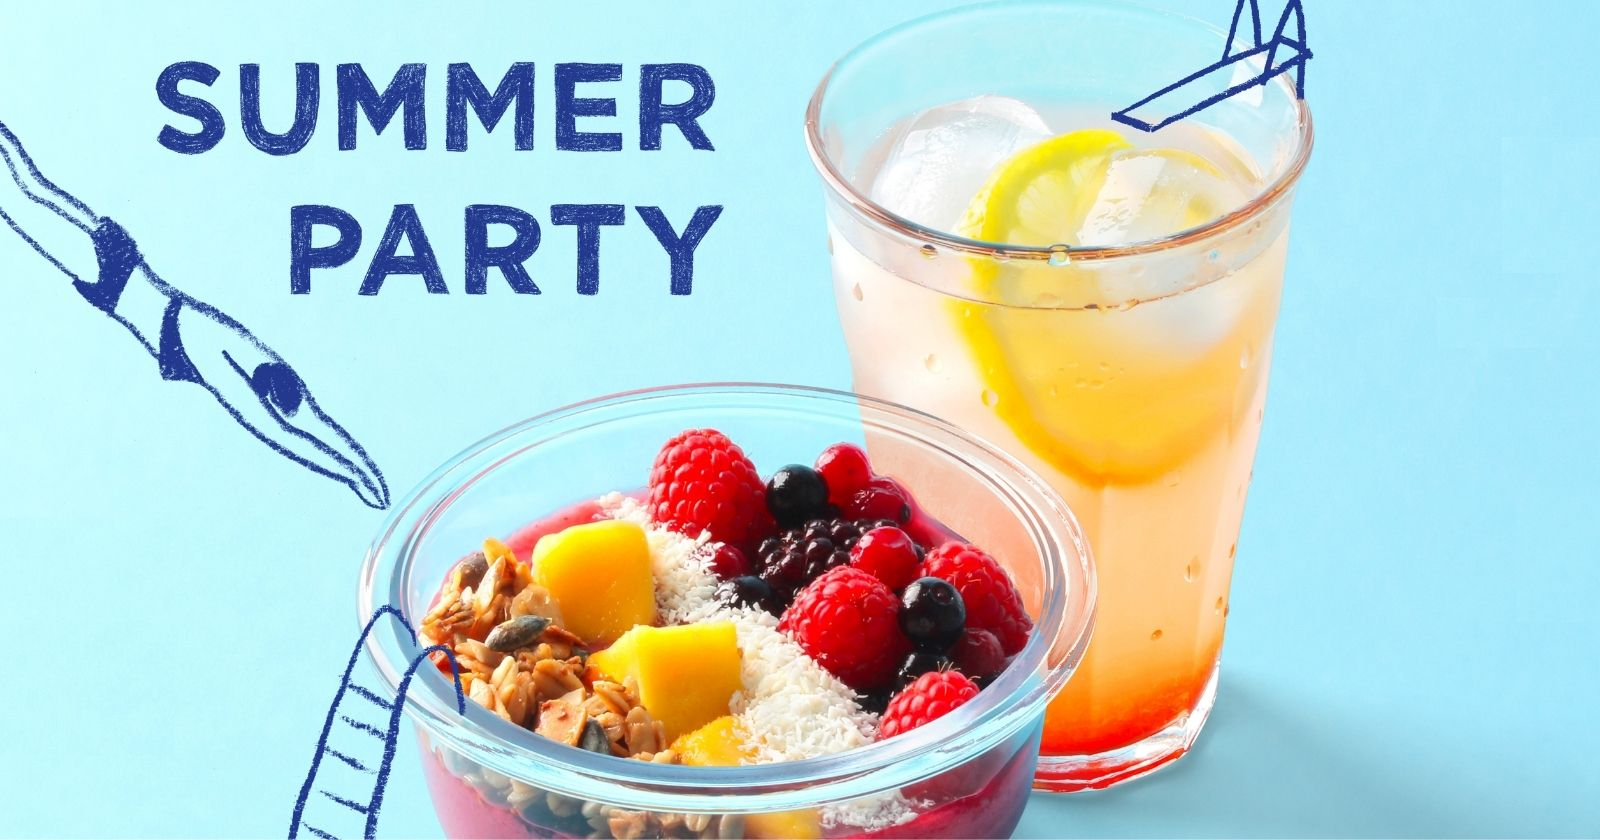 Summer party !